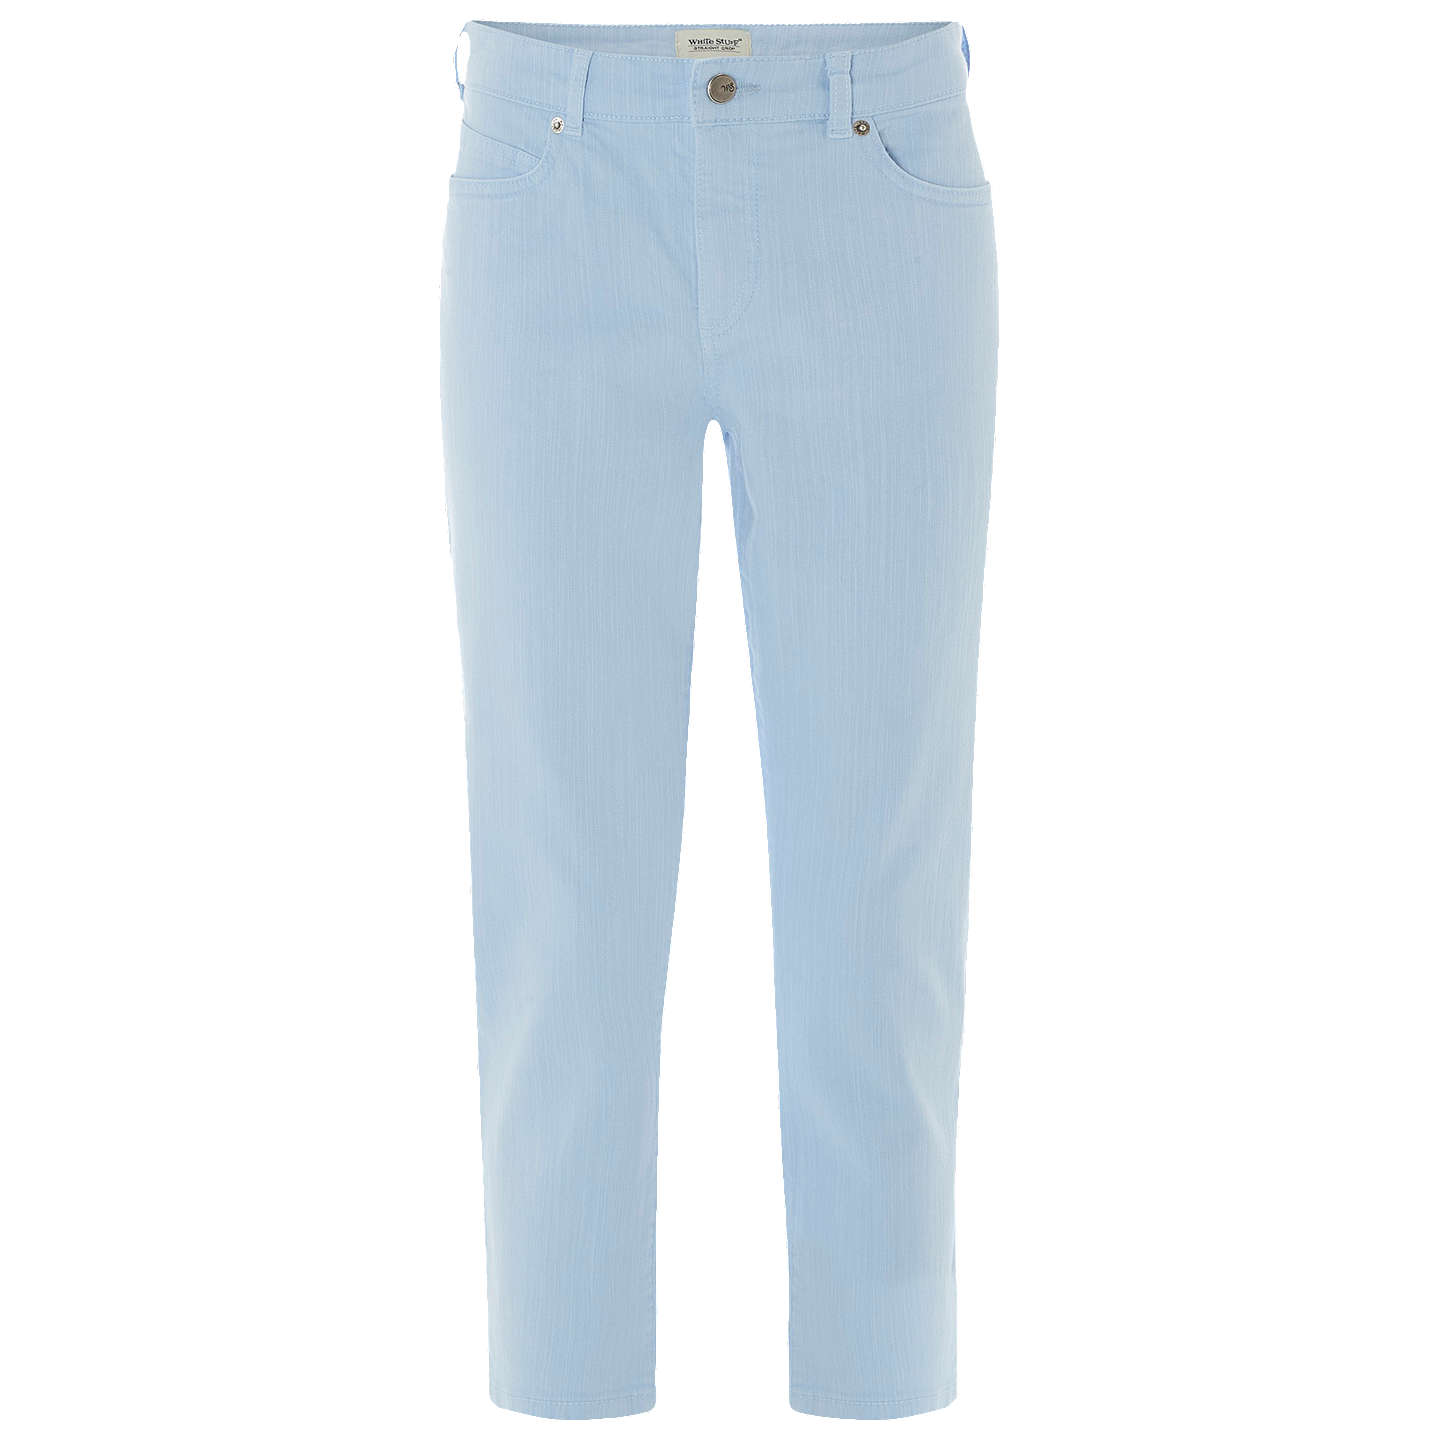 BuyWhite Stuff Sally Straight Crop Jeans, Blue, 6 Online at johnlewis.com